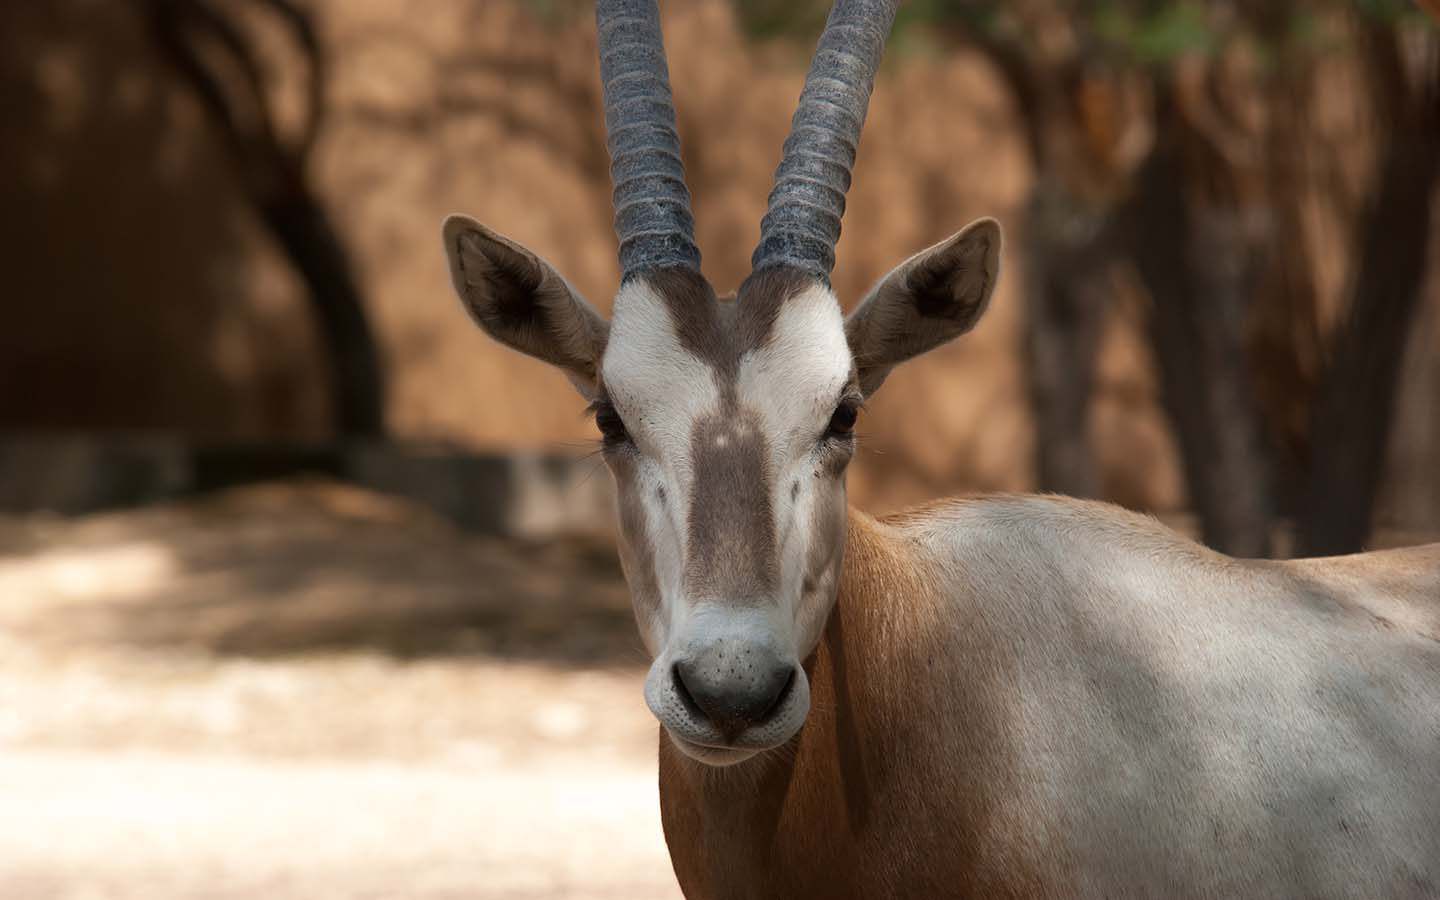 Arabian Oryx spotted in the wild